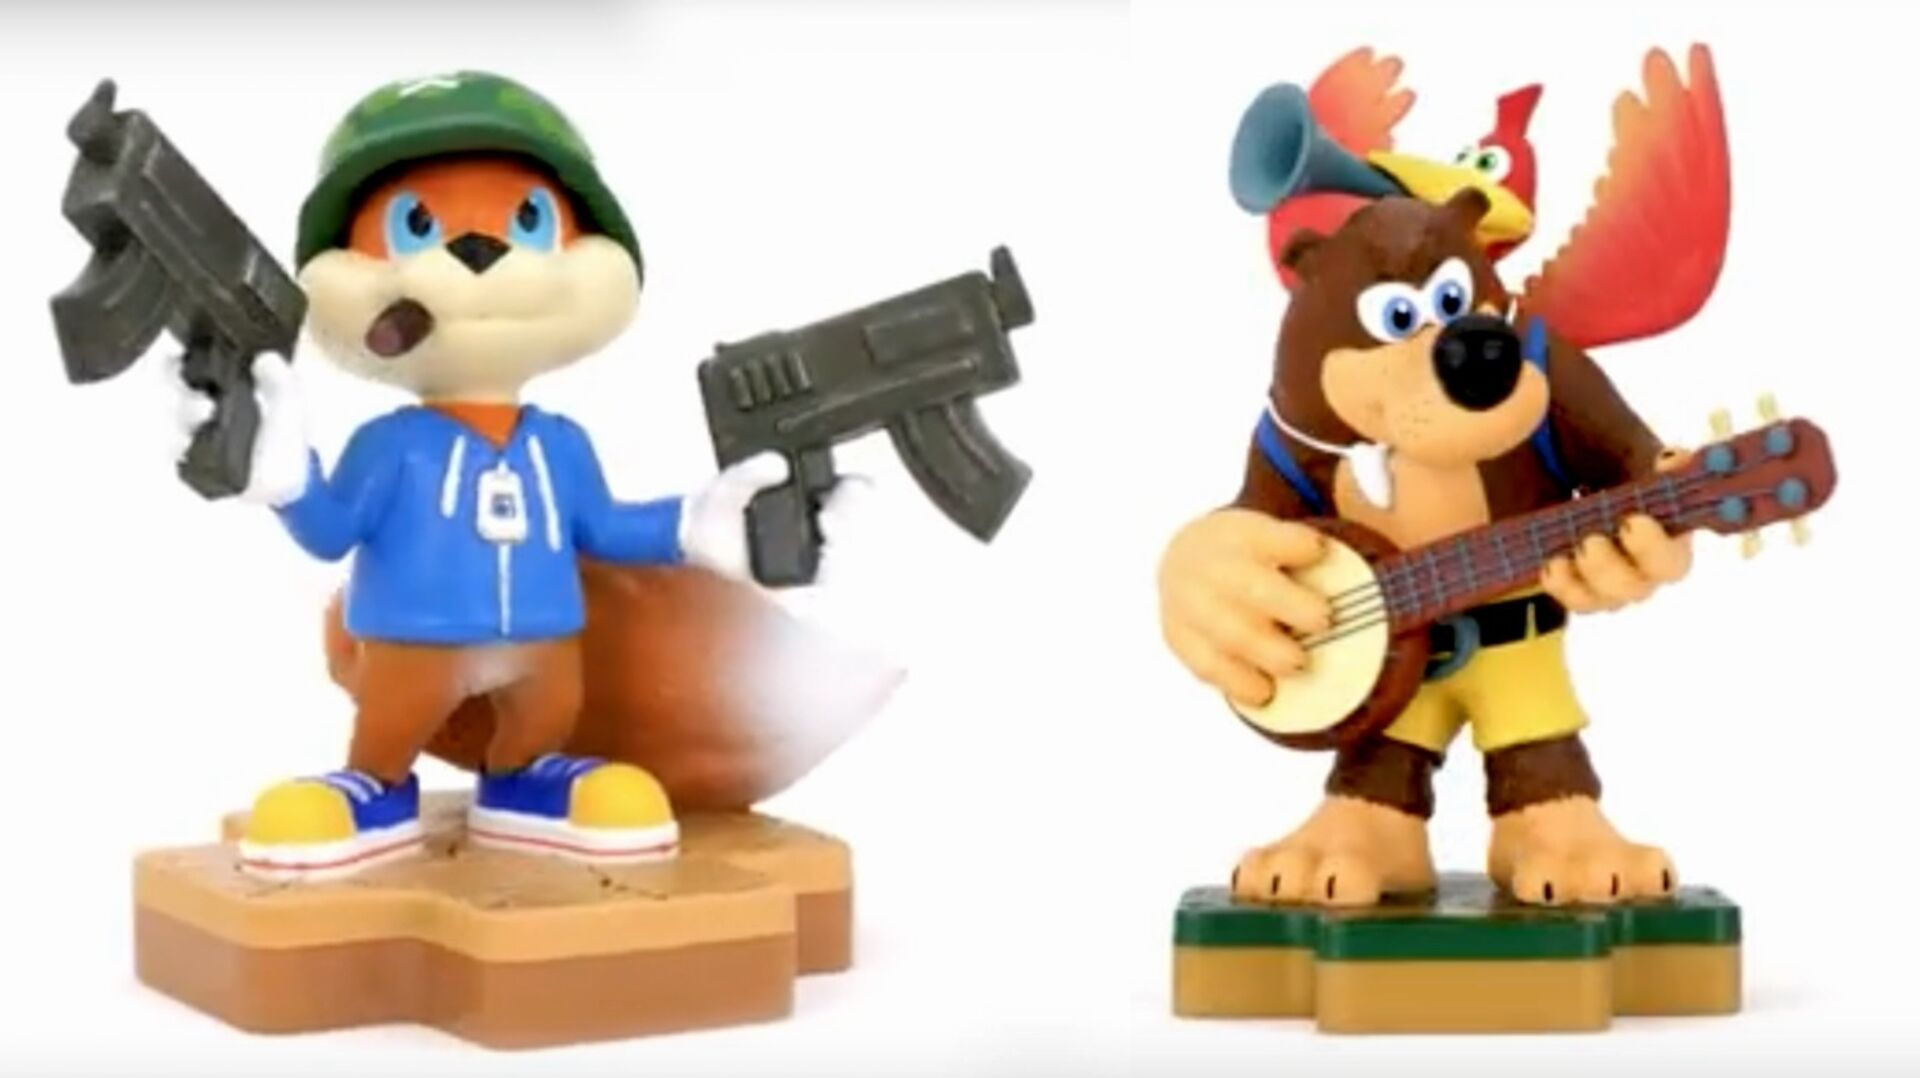 Banjo-Kazooie and Conker are the latest additions to the